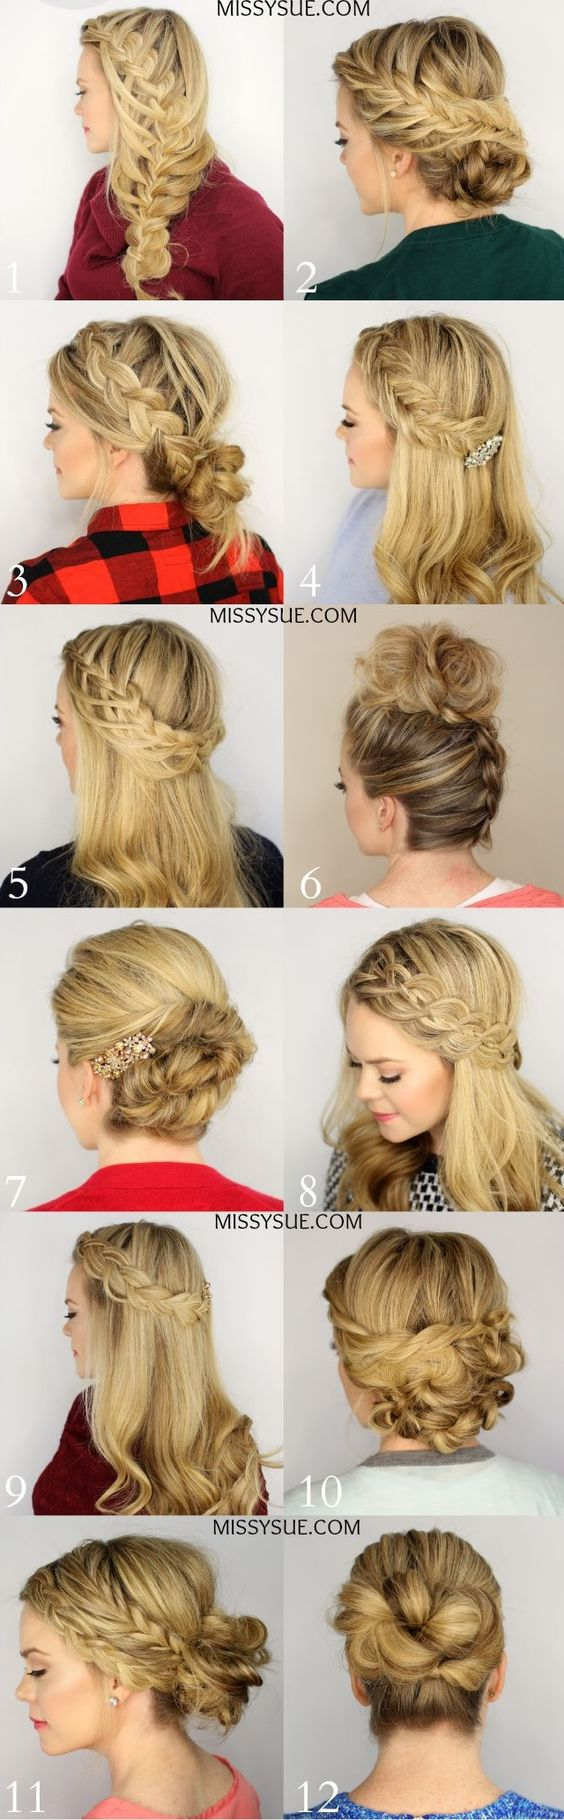 Coiffures Coiffure Simple And Articles On Pinterest